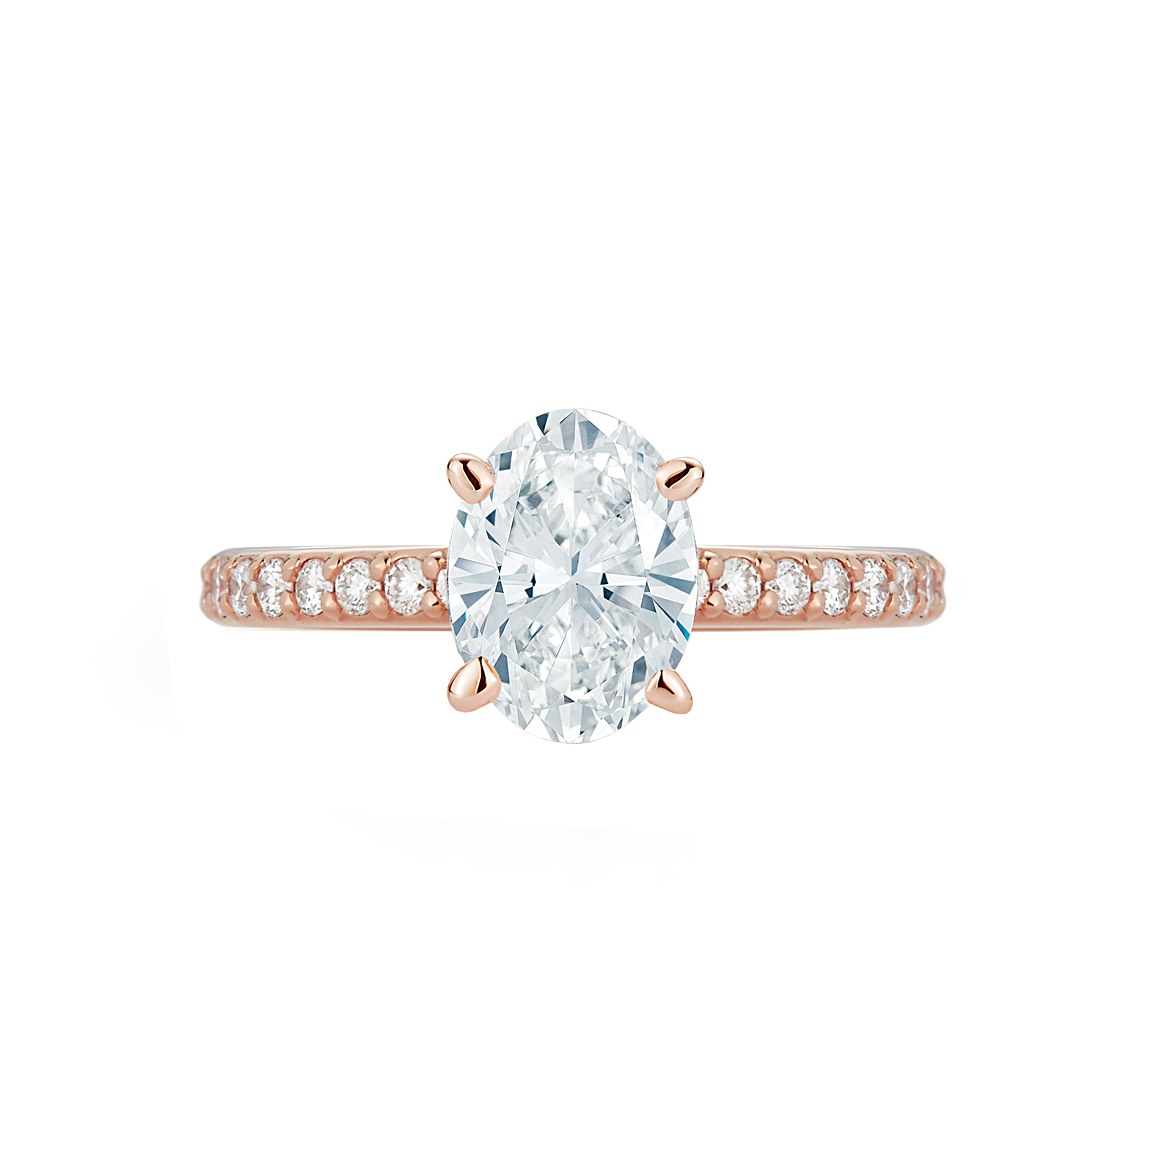 Pave Collection Rose Gold Oval Diamond Engagement Ring chicago Marshall Pierce & Company